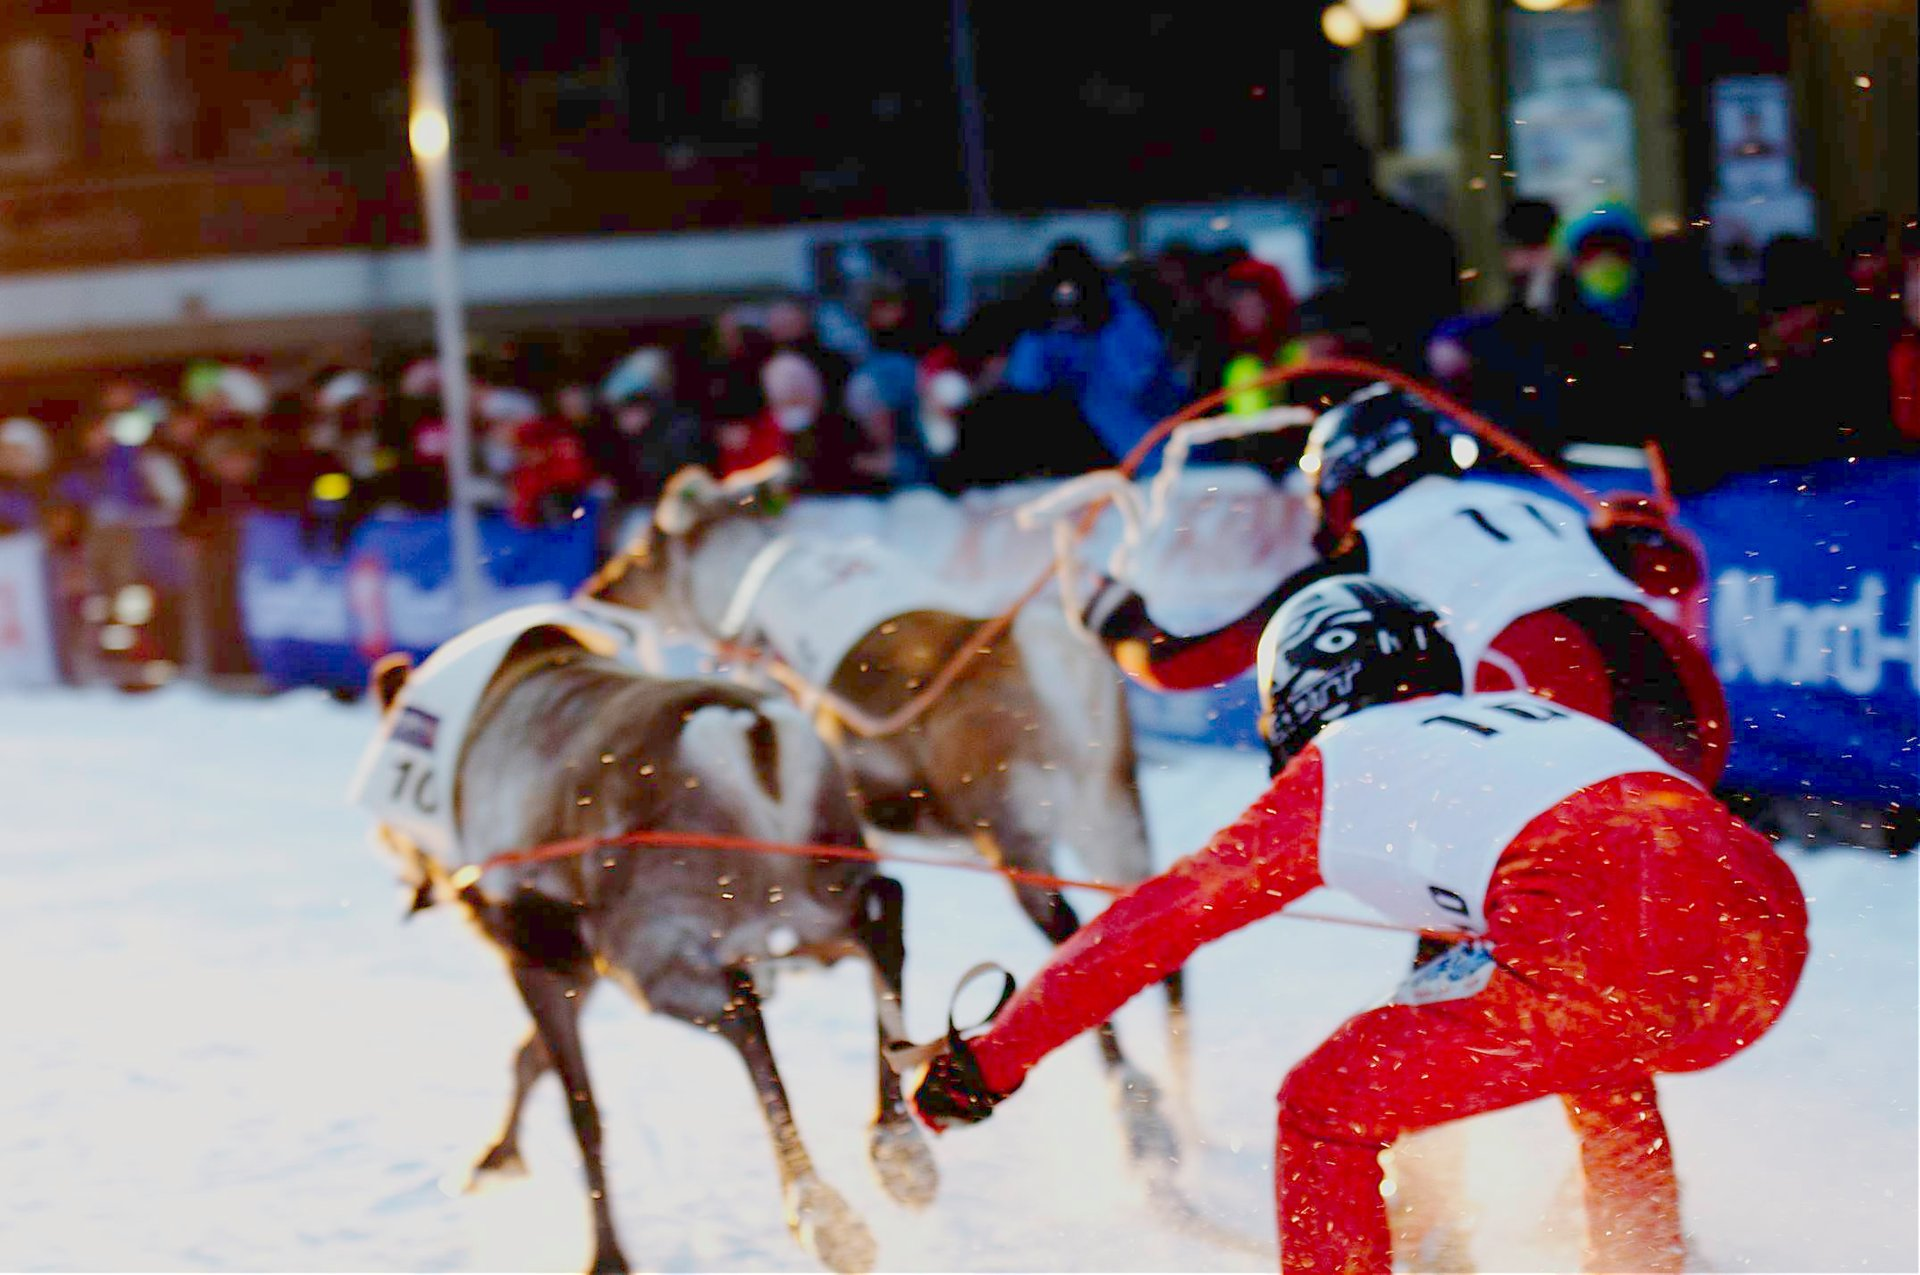 Best time to see World Reindeer Racing Championships in Norway 2019